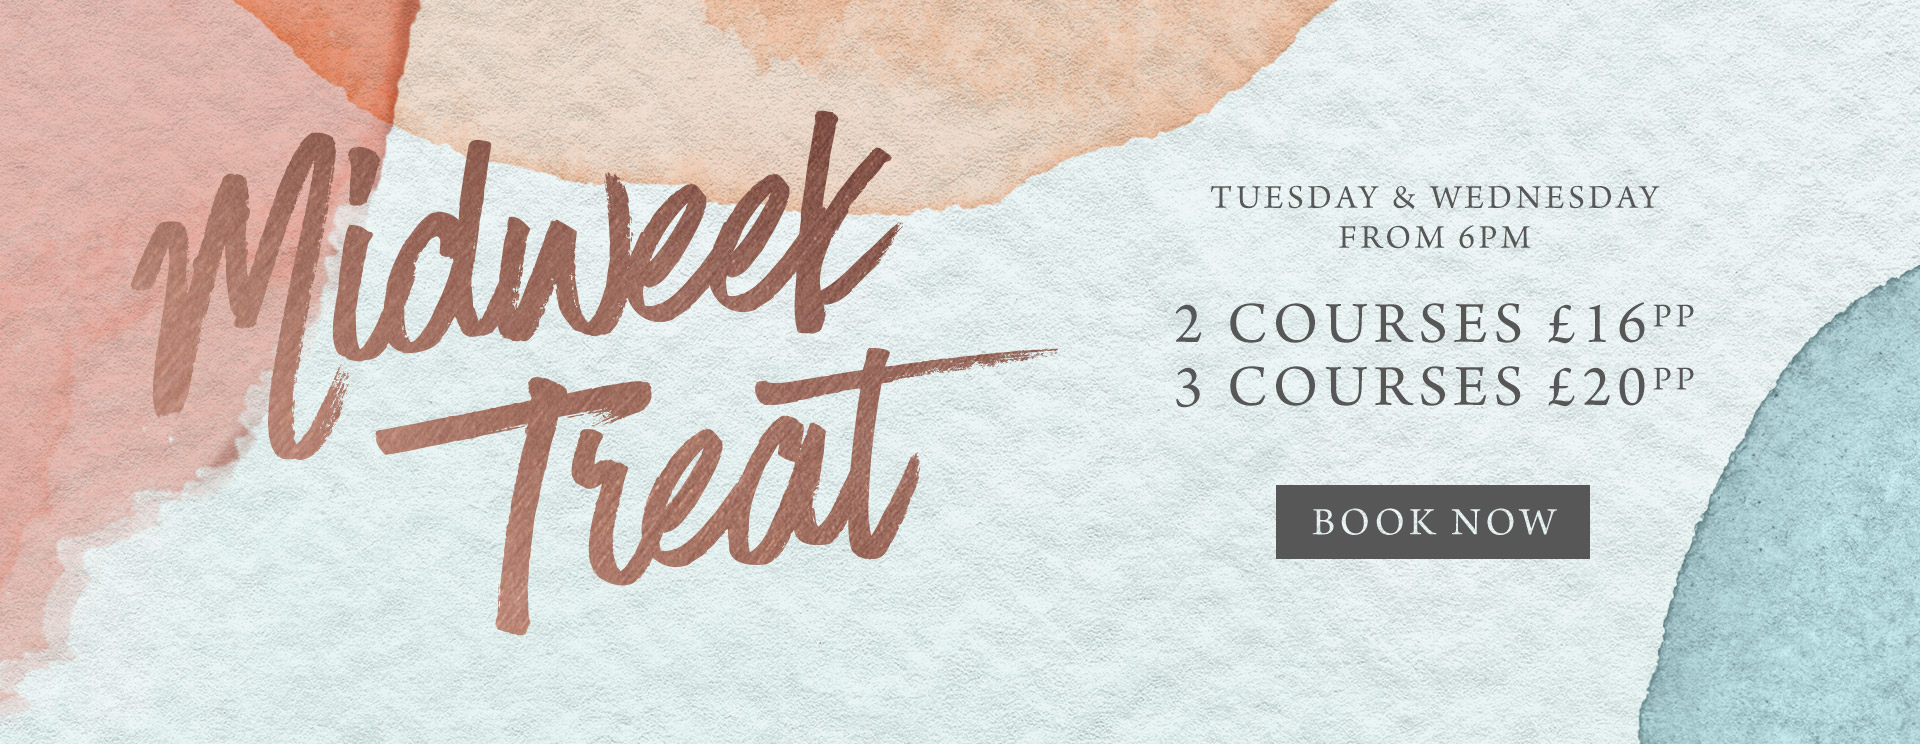 Midweek treat at The Riverside - Book now